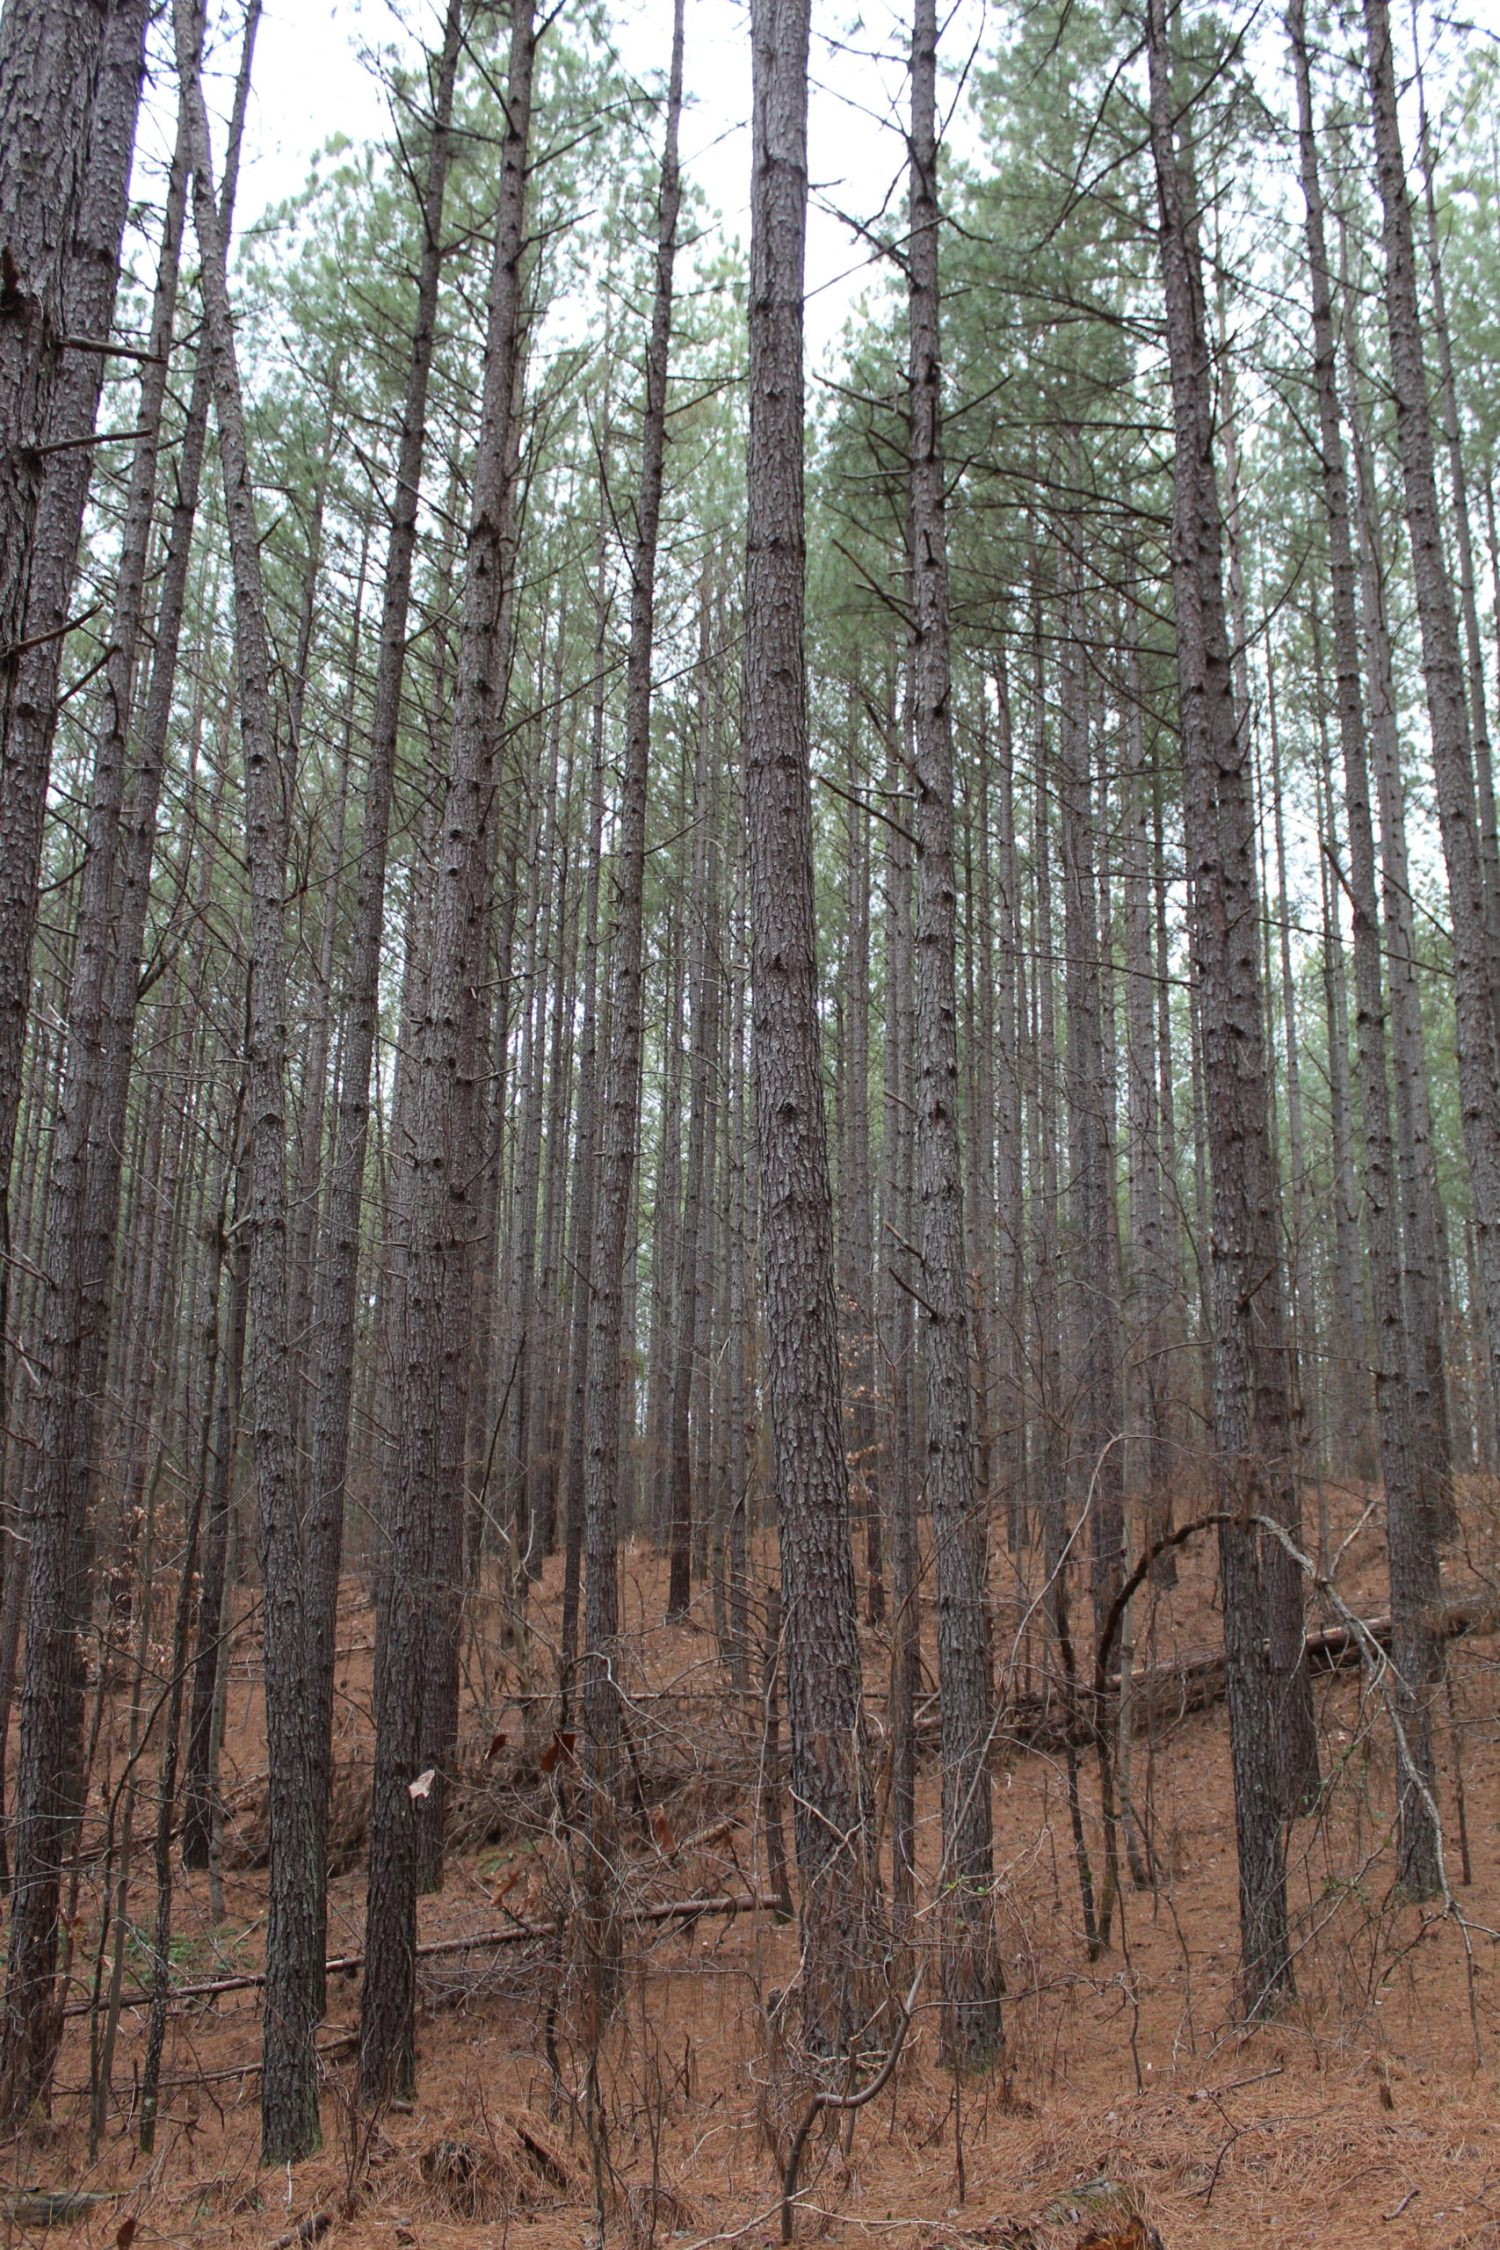 Bare trees in forrest